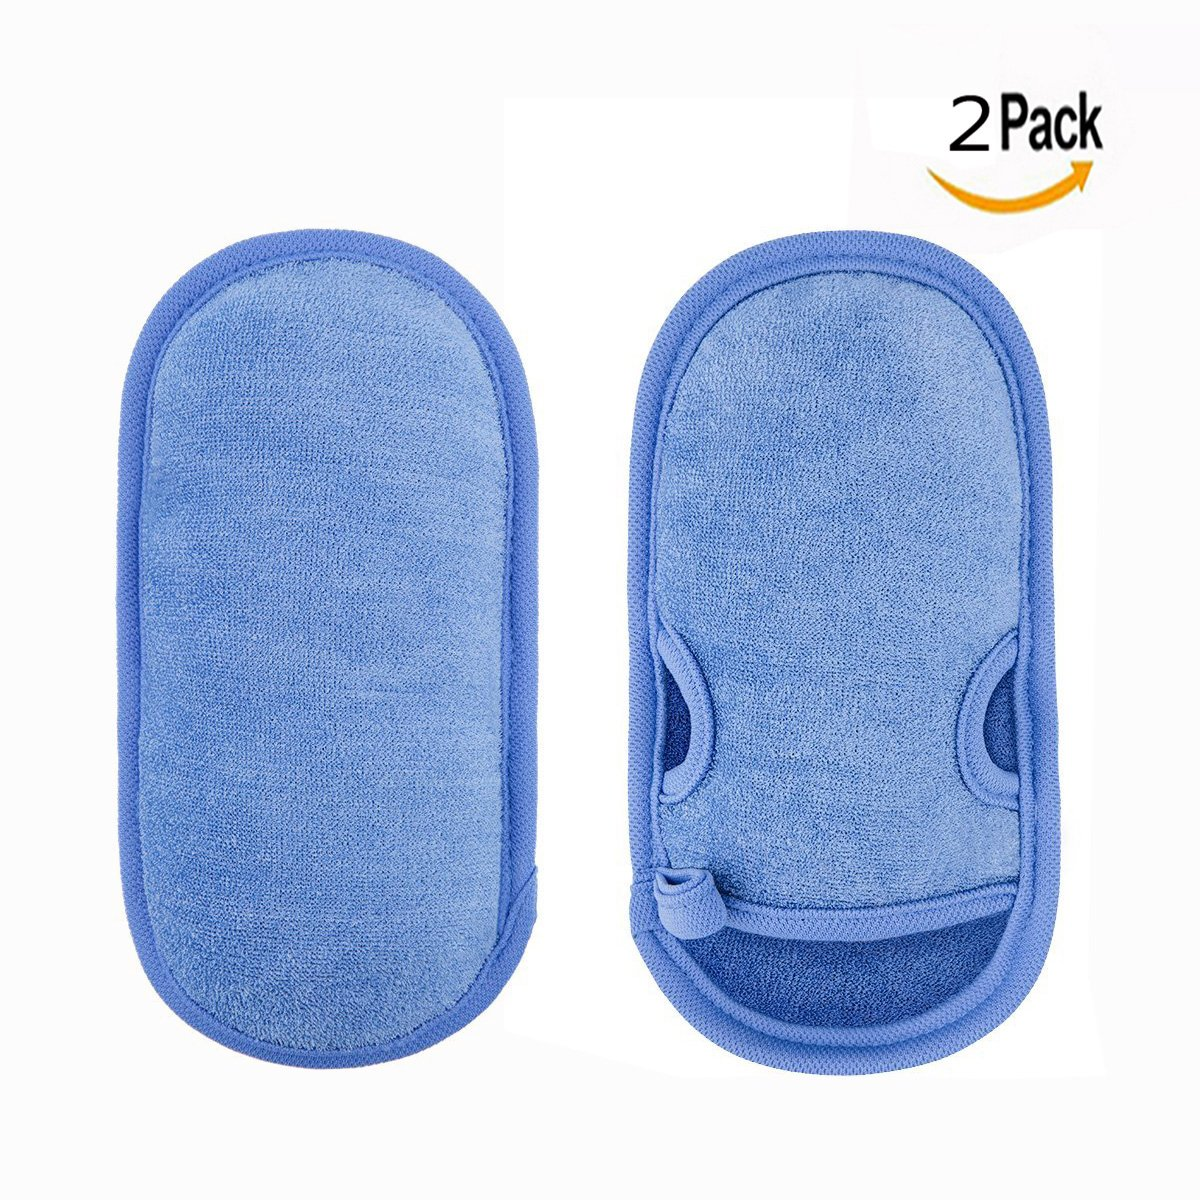 OFKPO 2PCS Soft Bath Gloves Scrubbing Back Rubbing Exfoliating Cleaning Gloves Shower Gloves For Body Washing Or Shower (Blue)